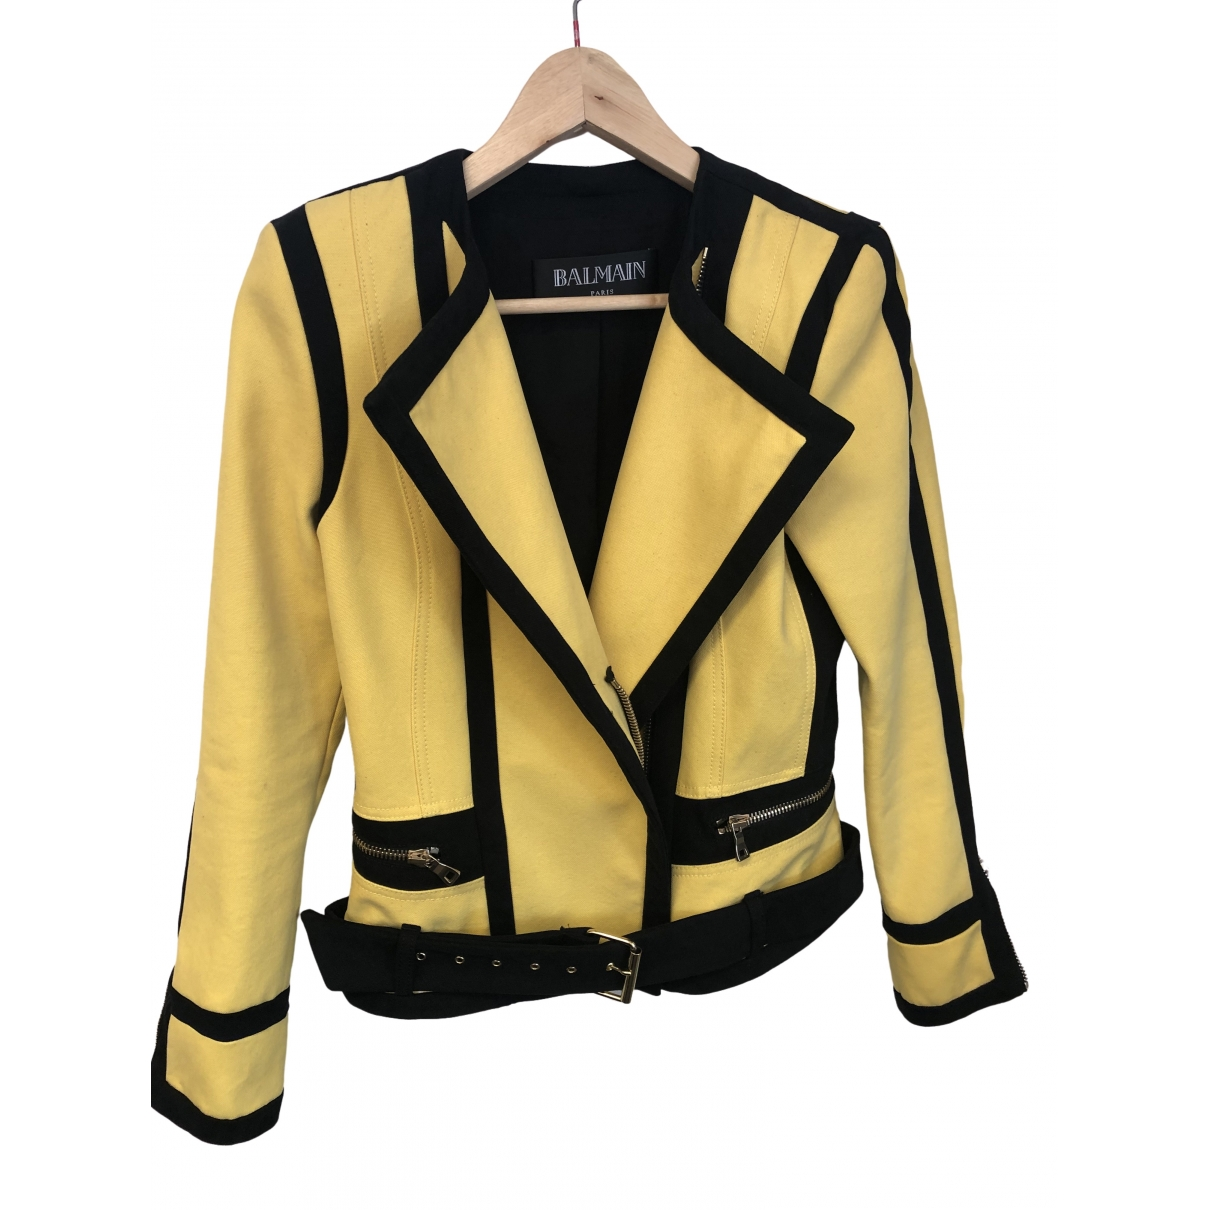 Balmain \N Yellow Cotton jacket for Women 38 FR